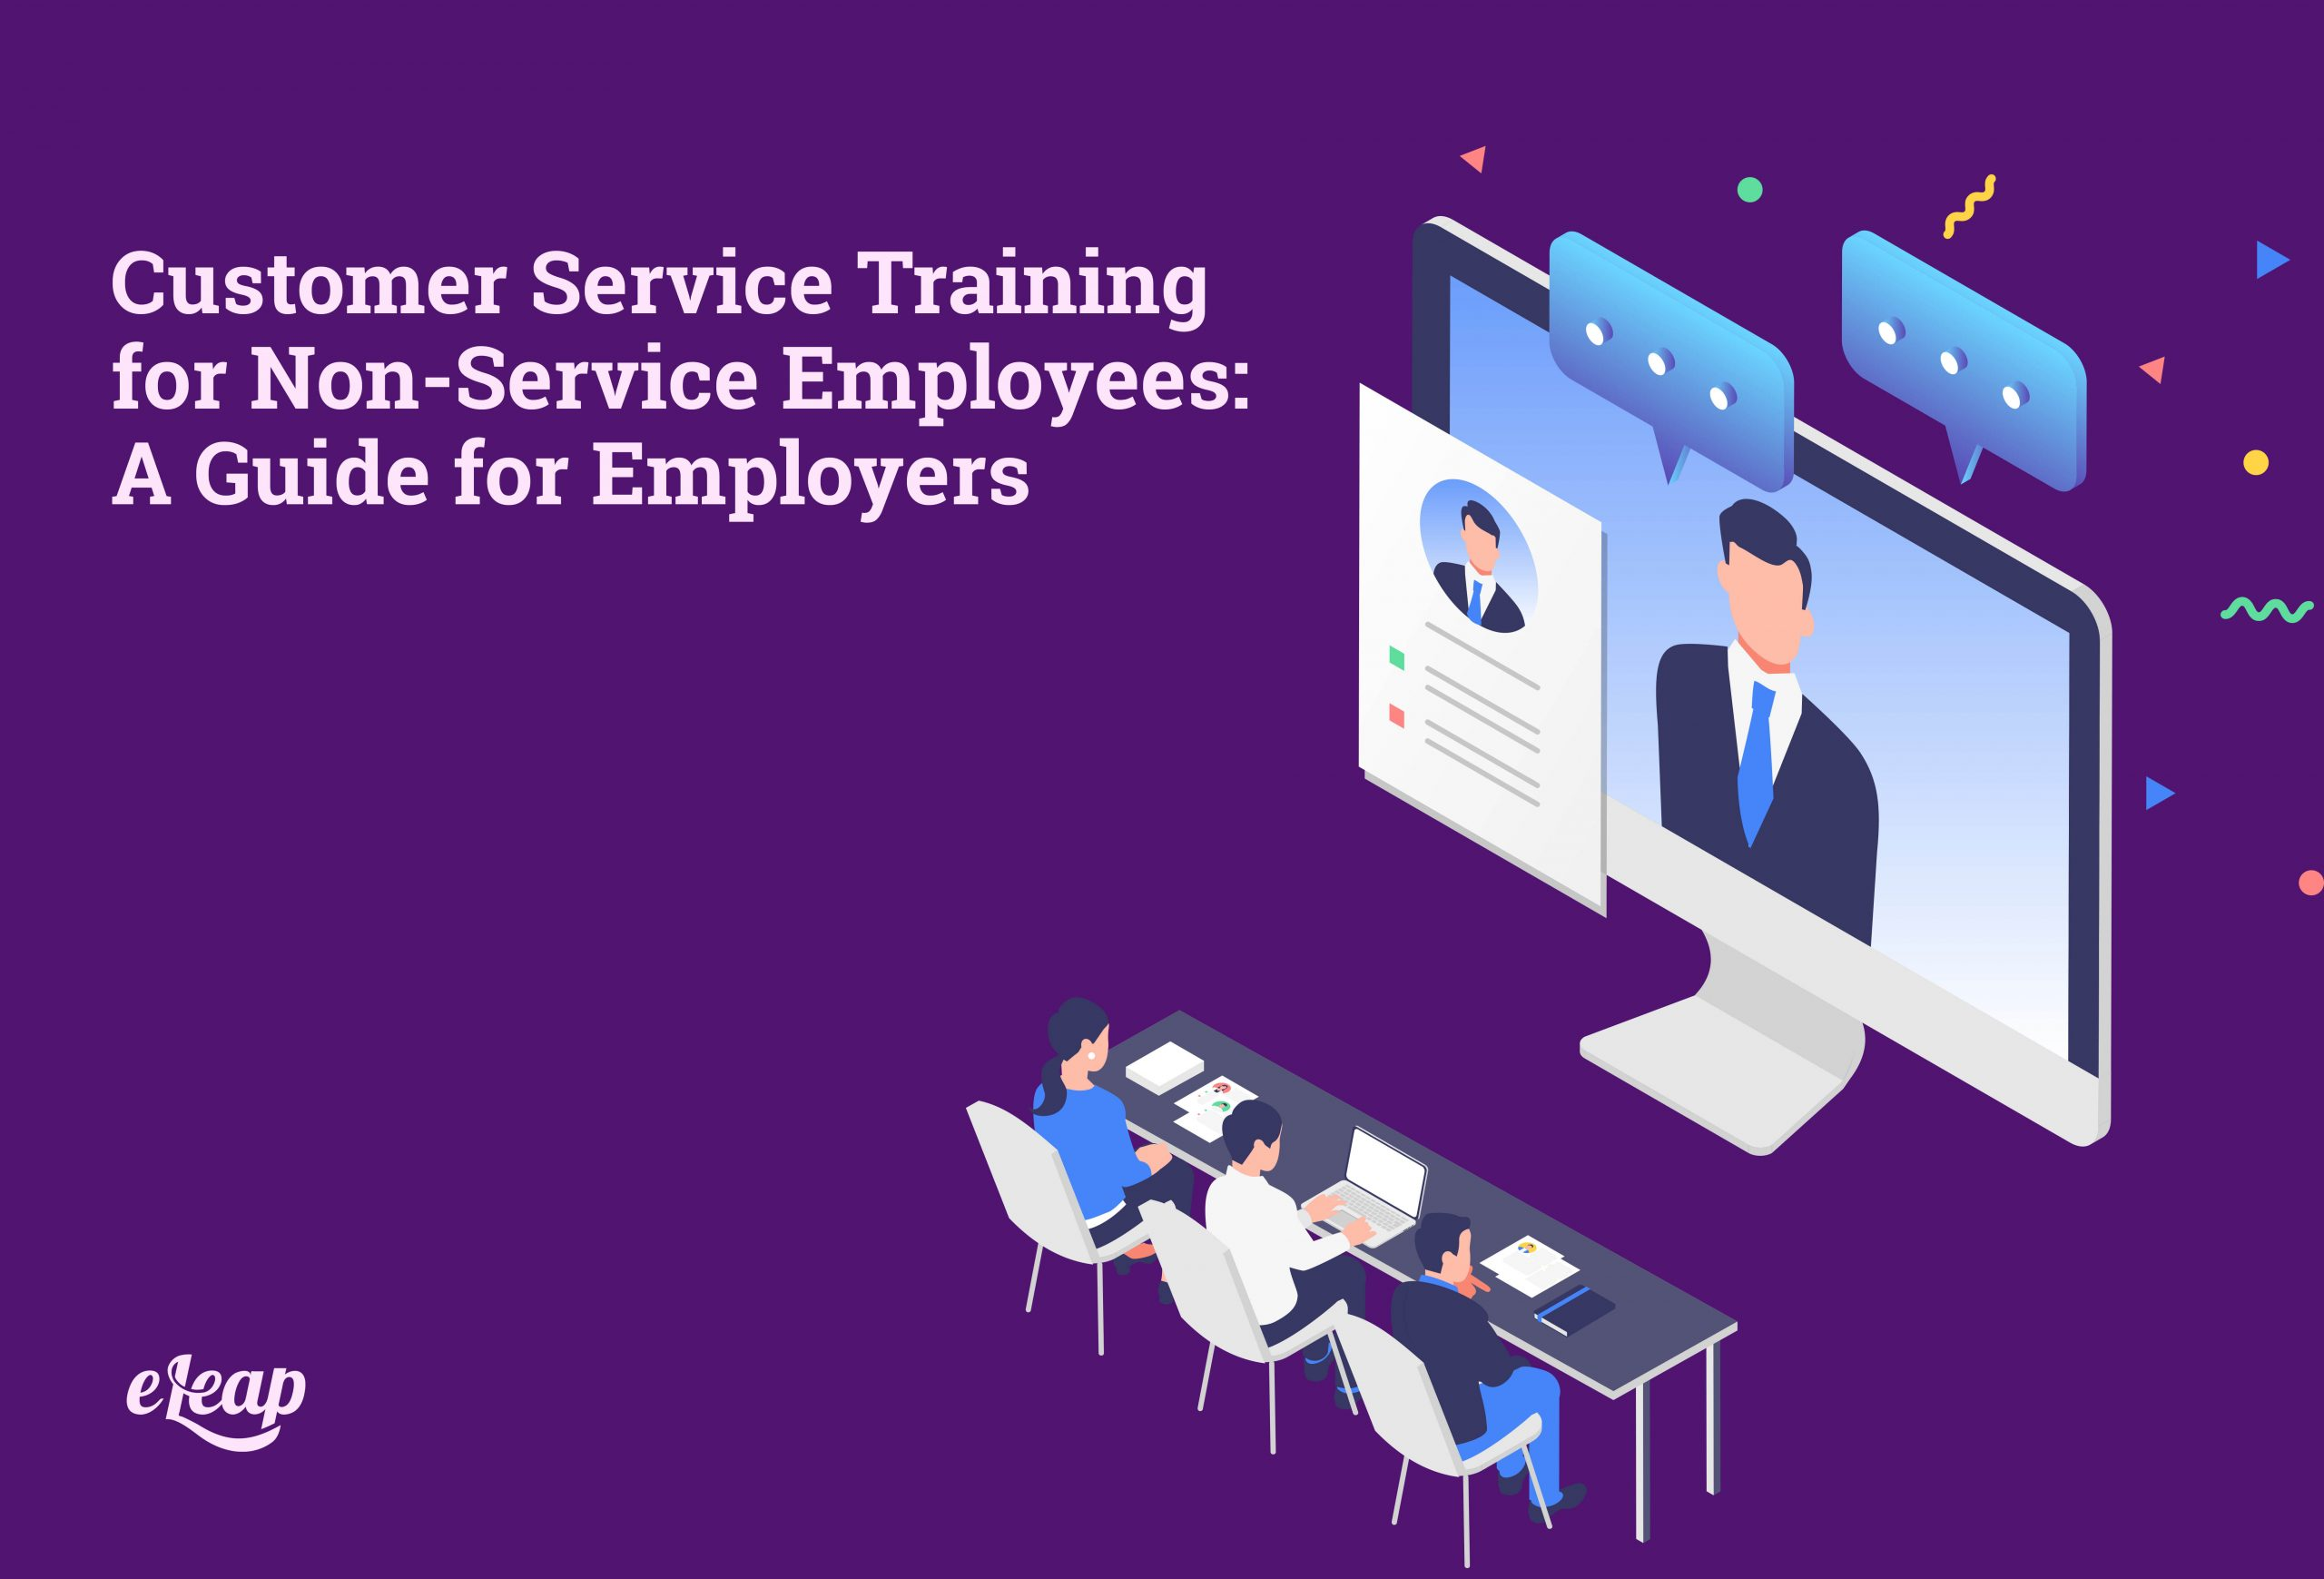 Customer Service Training for Non-Service Employees: A Guide for Employers